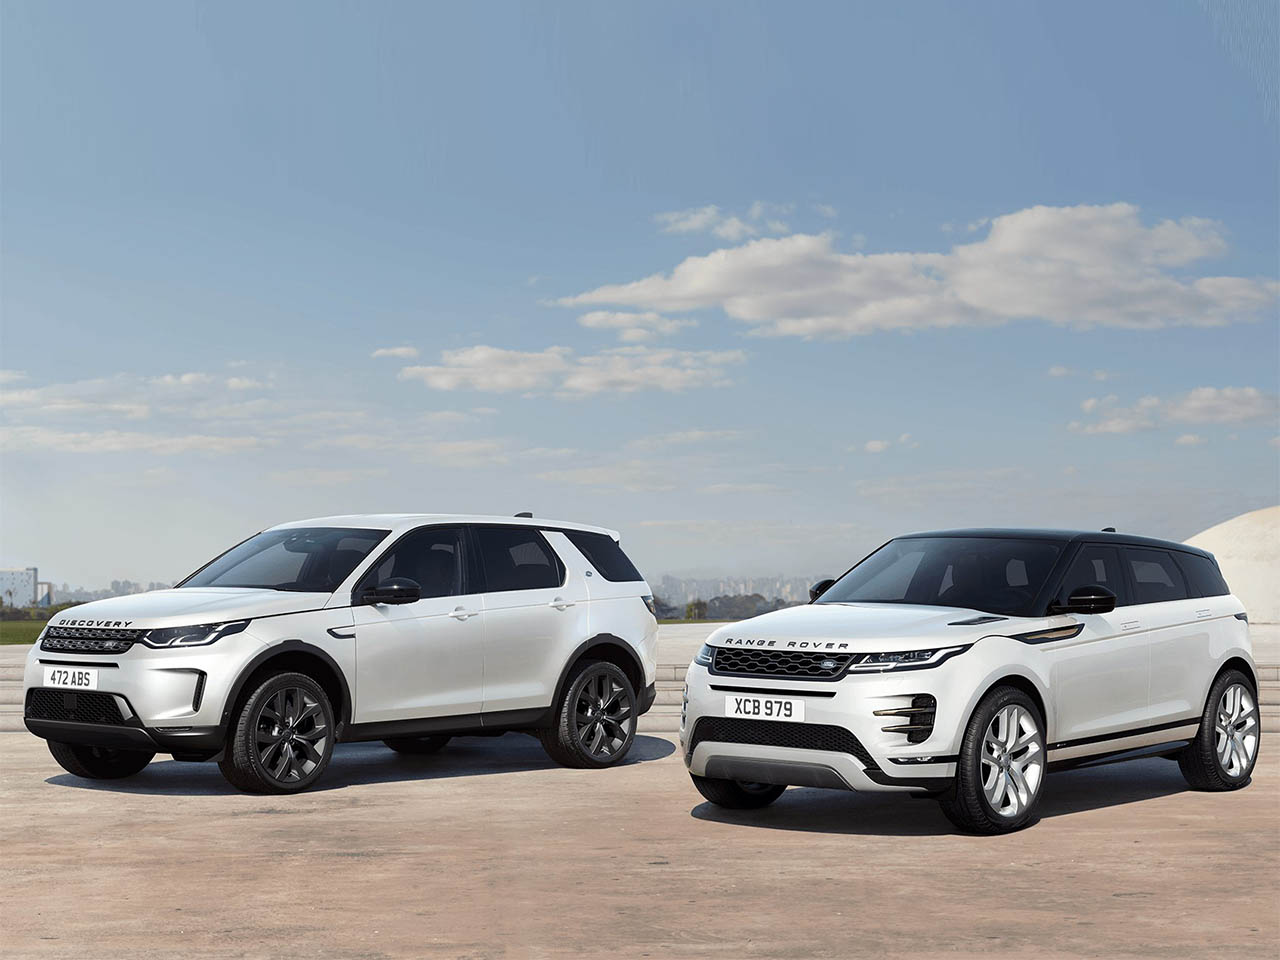 2020MY Discovery Sport and Evoque BS6